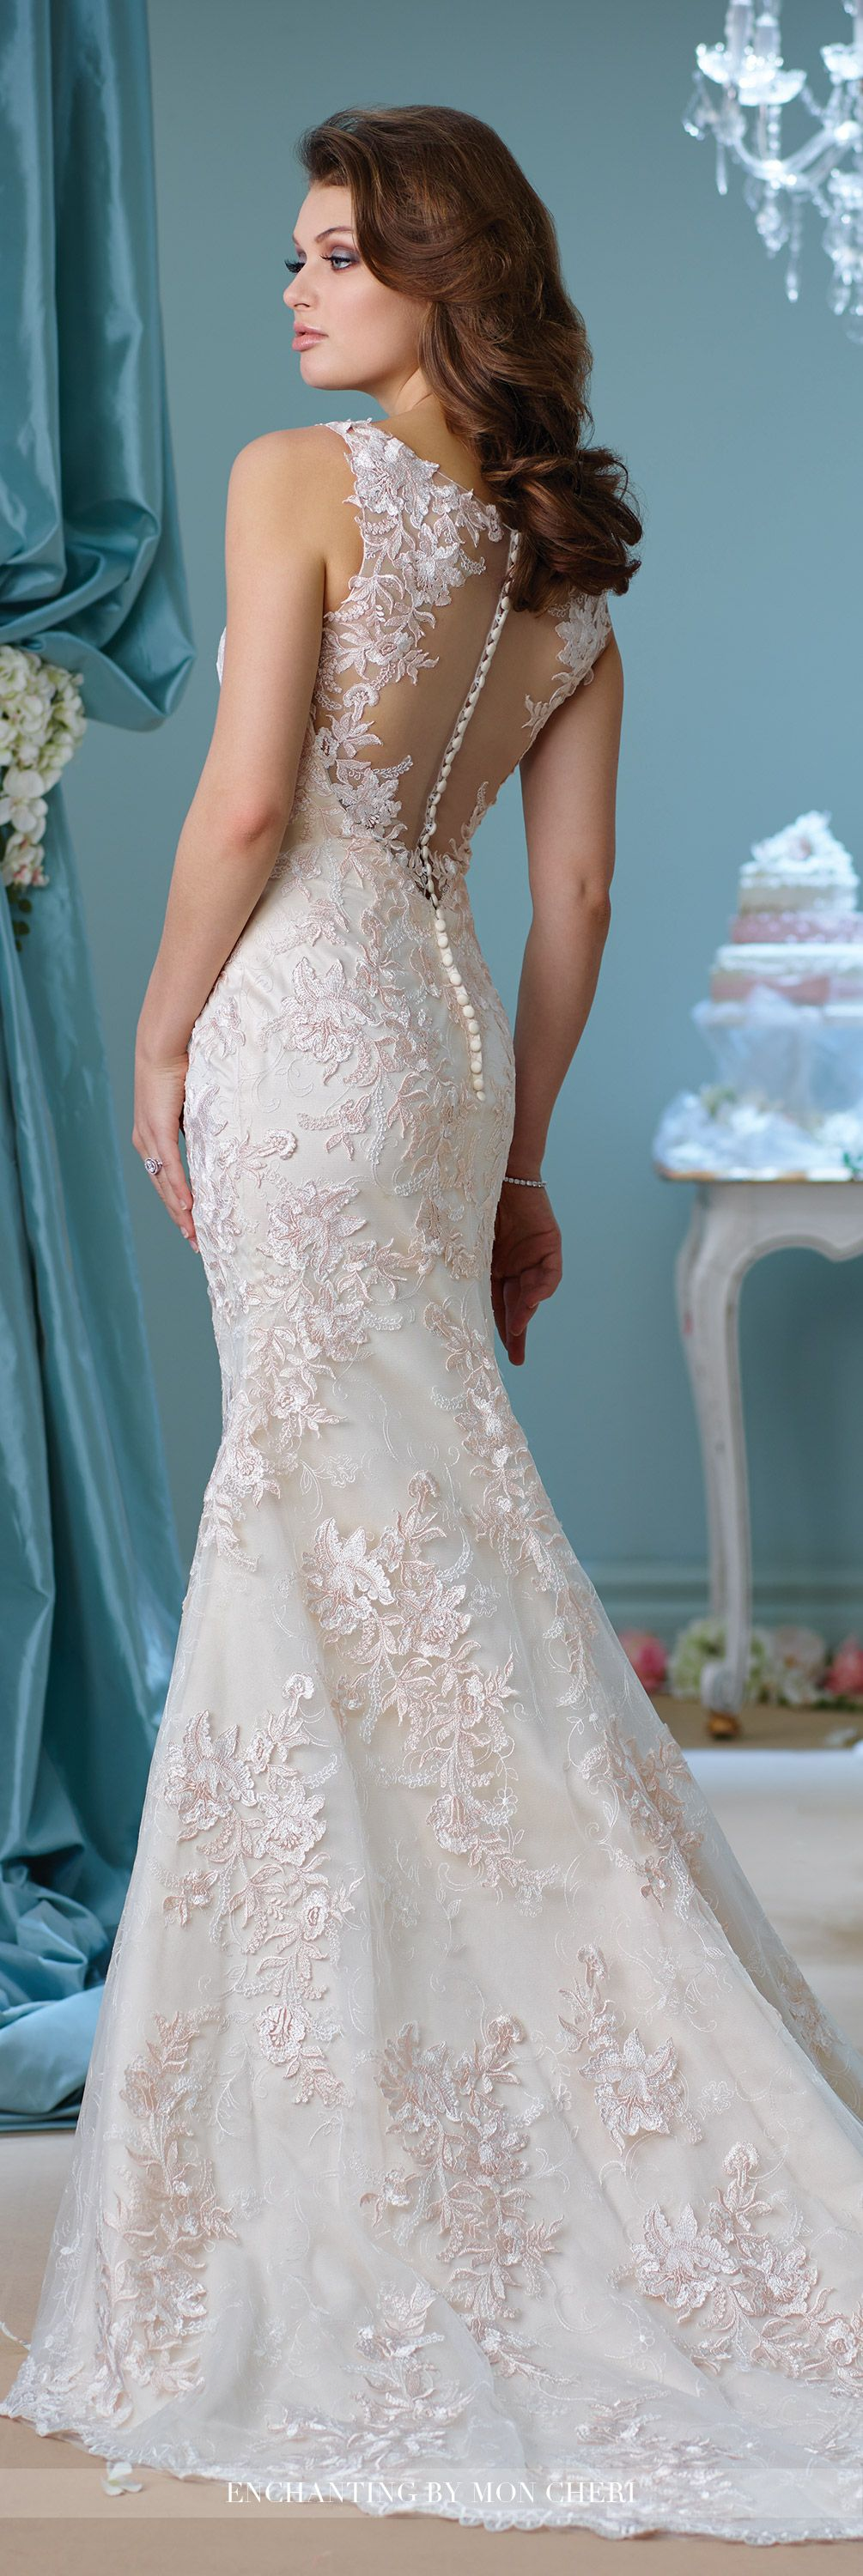 Embroidered Trumpet Wedding Dress- 216163- Enchanting by Mon Cheri ...